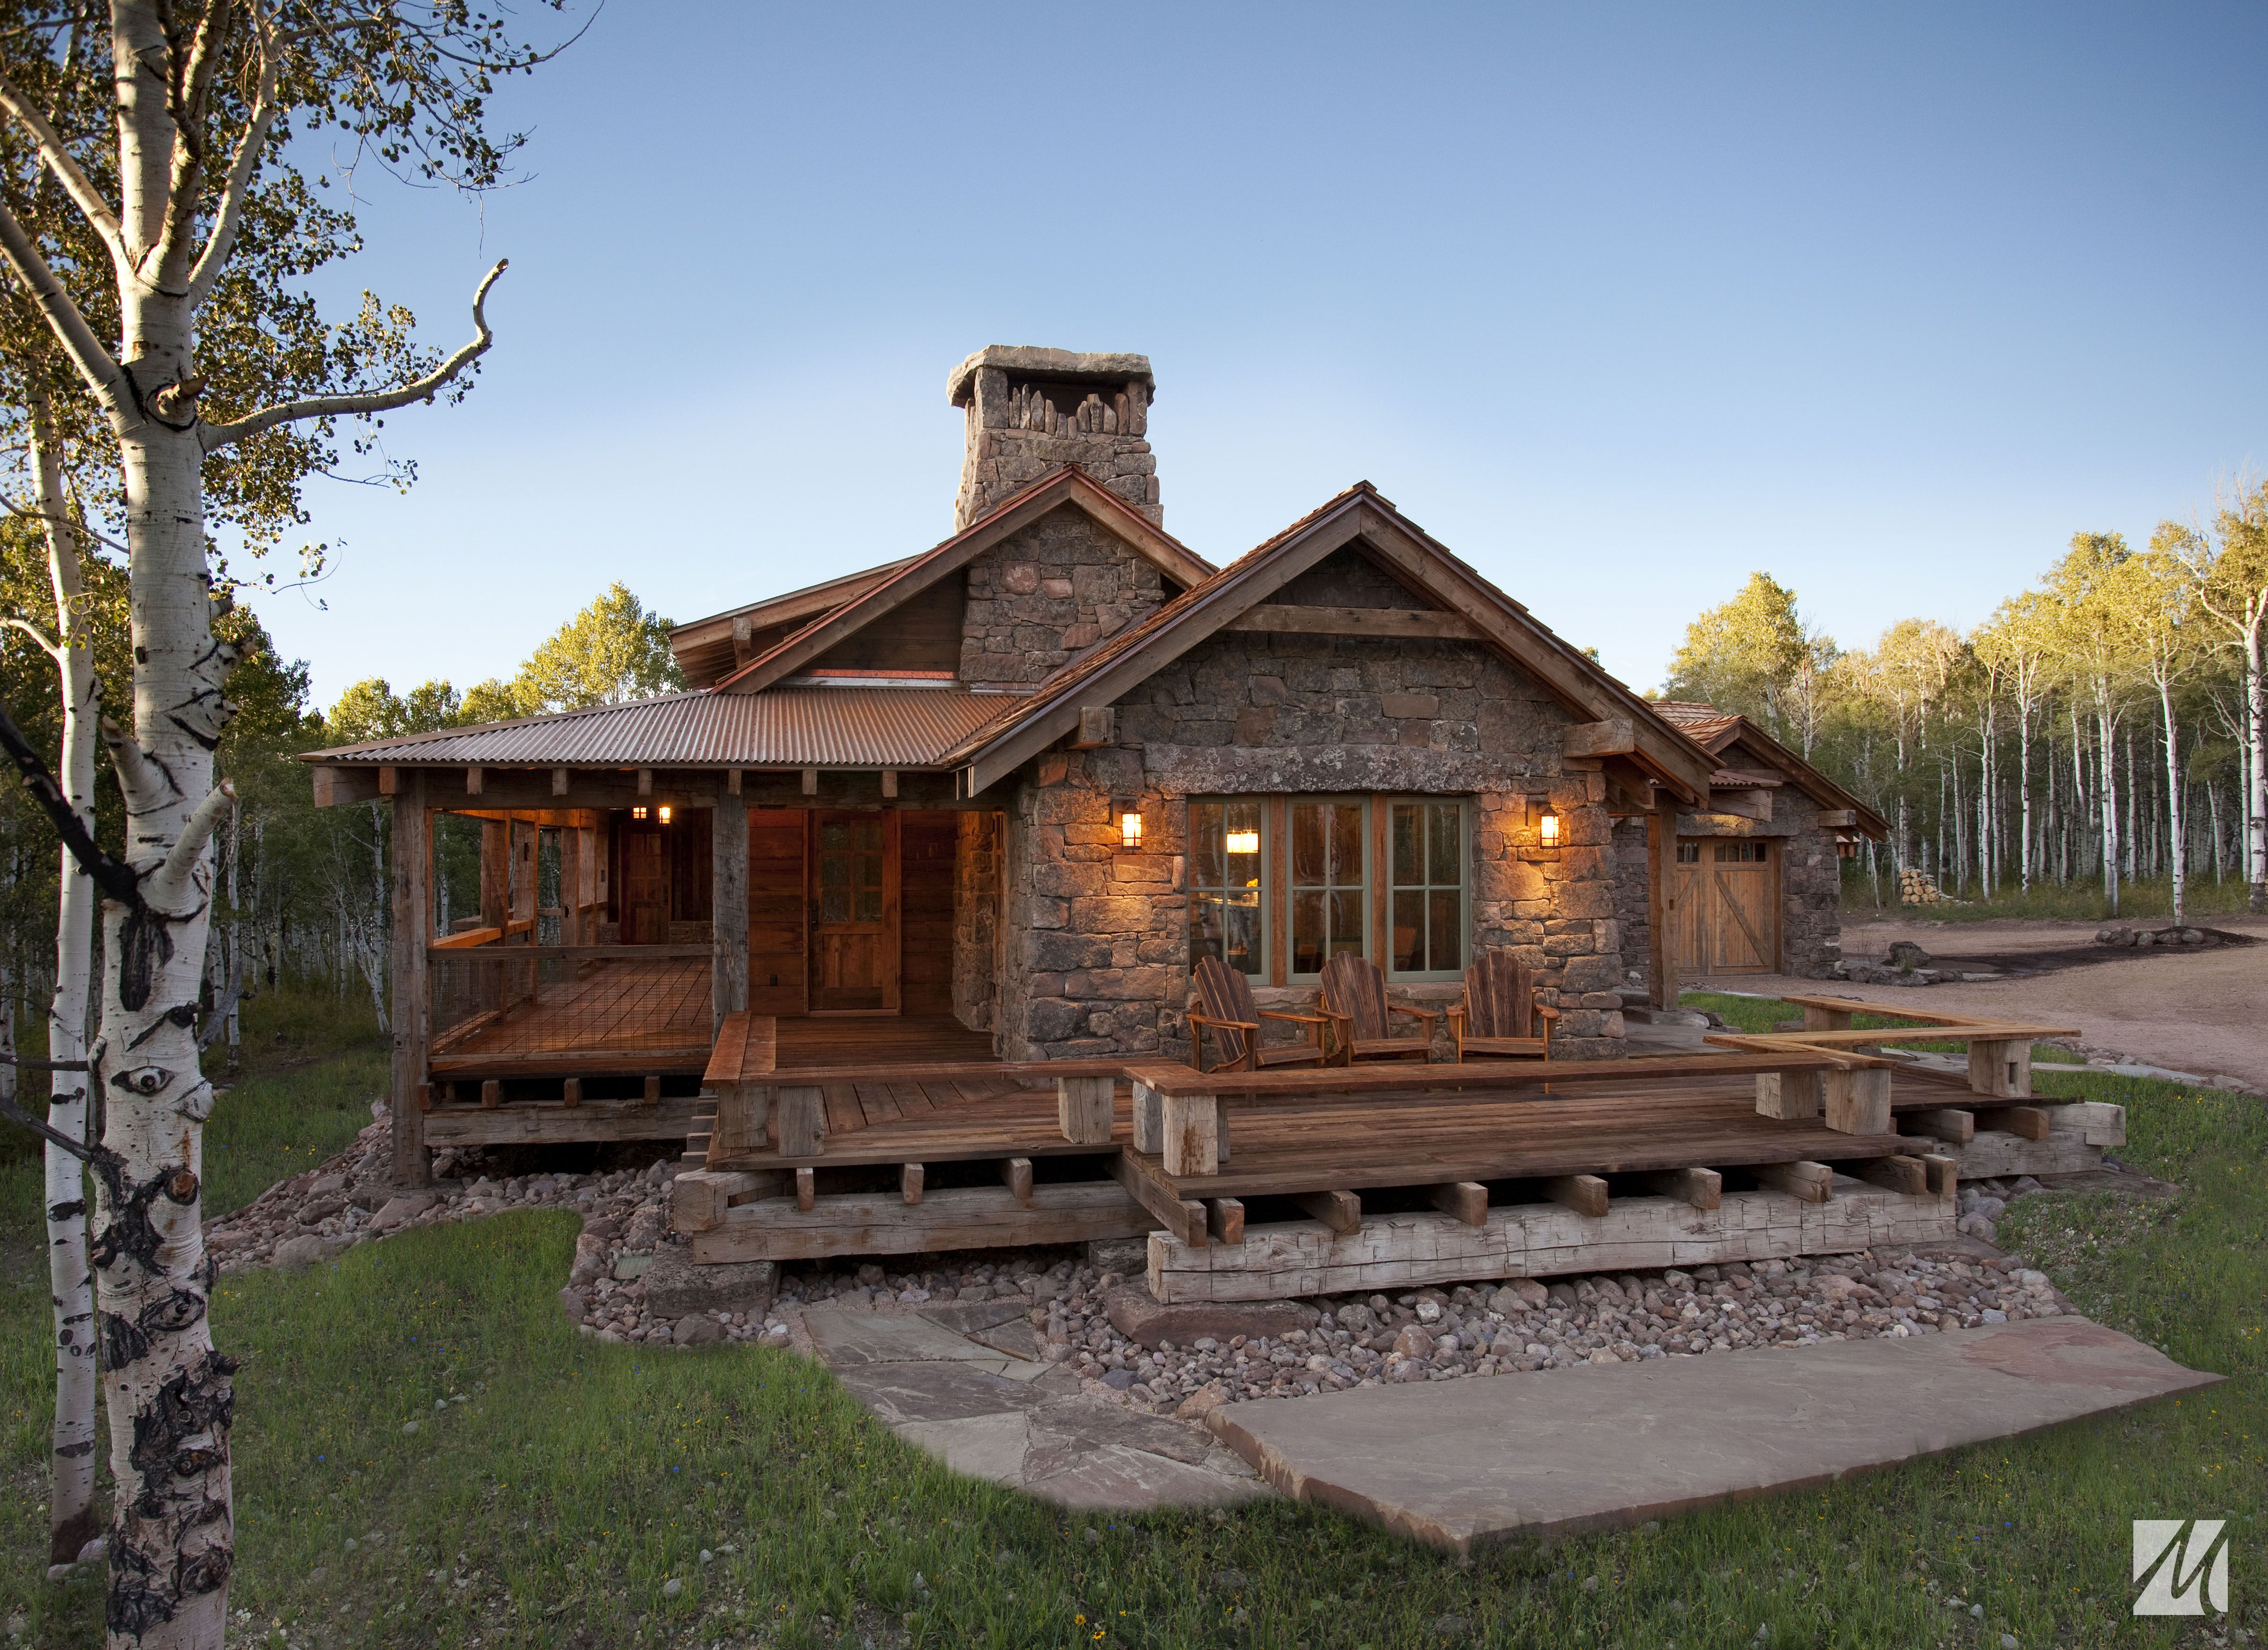 Small Cabin Home Plan With Open Living Floor Plan Stone House Plans Rustic House Plans Rustic Cabin Design